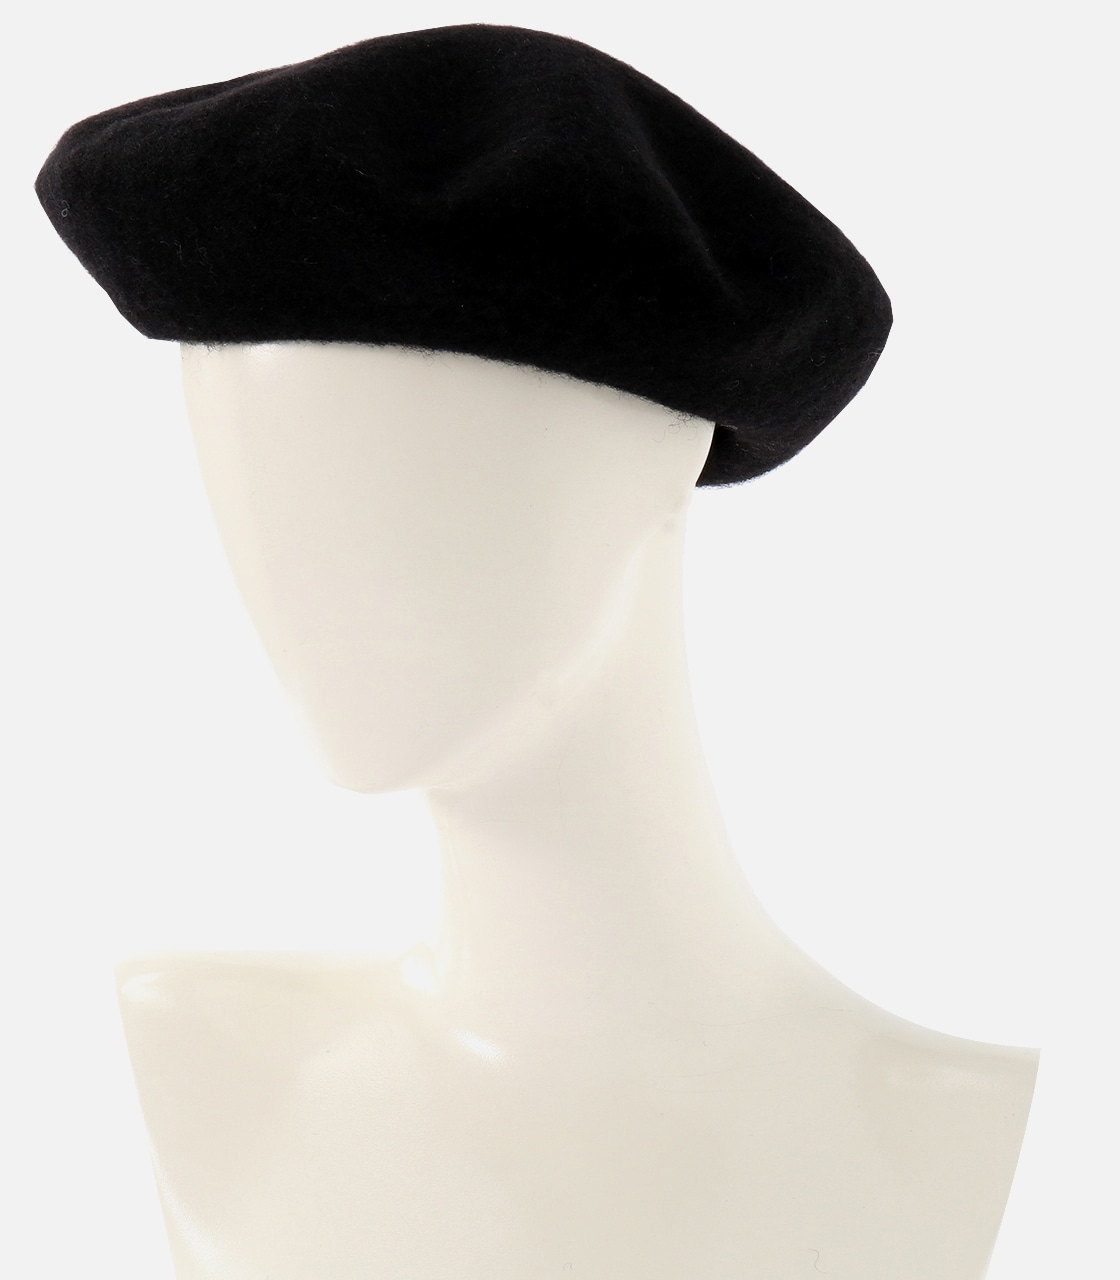 【AZUL BY MOUSSY】BASQUE BERET 詳細画像 BLK 9